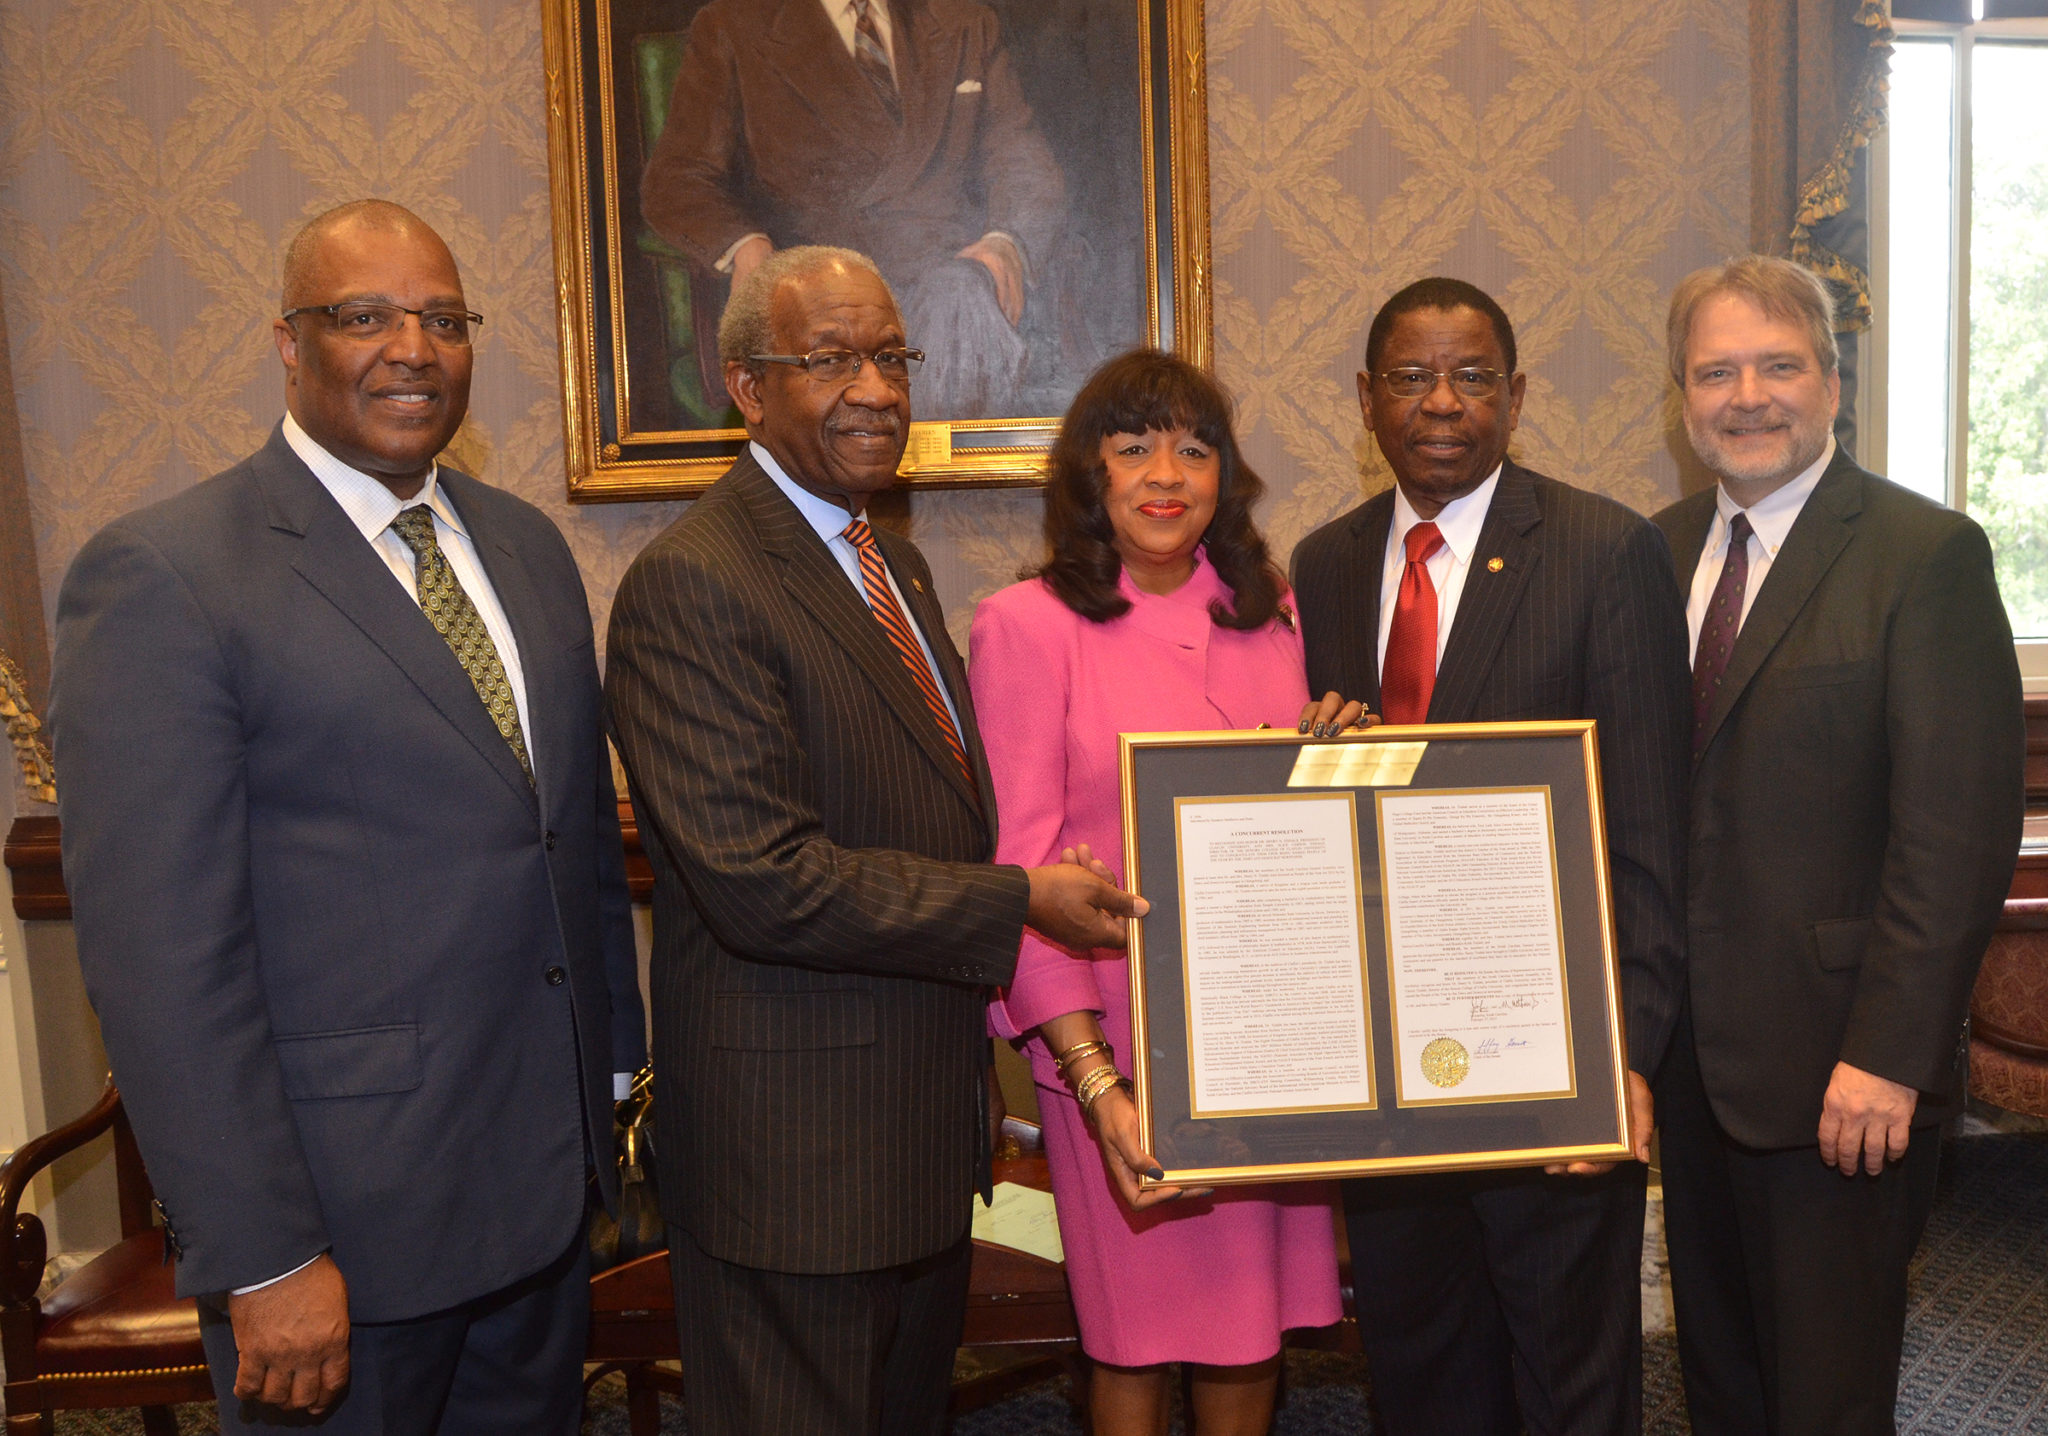 Pictured are, from left, Orangeburg Mayor and Claflin University alumnus Michael Butler, state Sen. John Matthews of Orangeburg, Claflin First Lady Alice Carson Tisdale, Claflin President Dr. Henry N. Tisdale and state Sen. Brad Hutto of Orangeburg. The Tisdales were honored on Tuesday with a resolution from the S.C. Senate and House of Representatives for their 20 years of visionary leadership and service at the University and beyond.